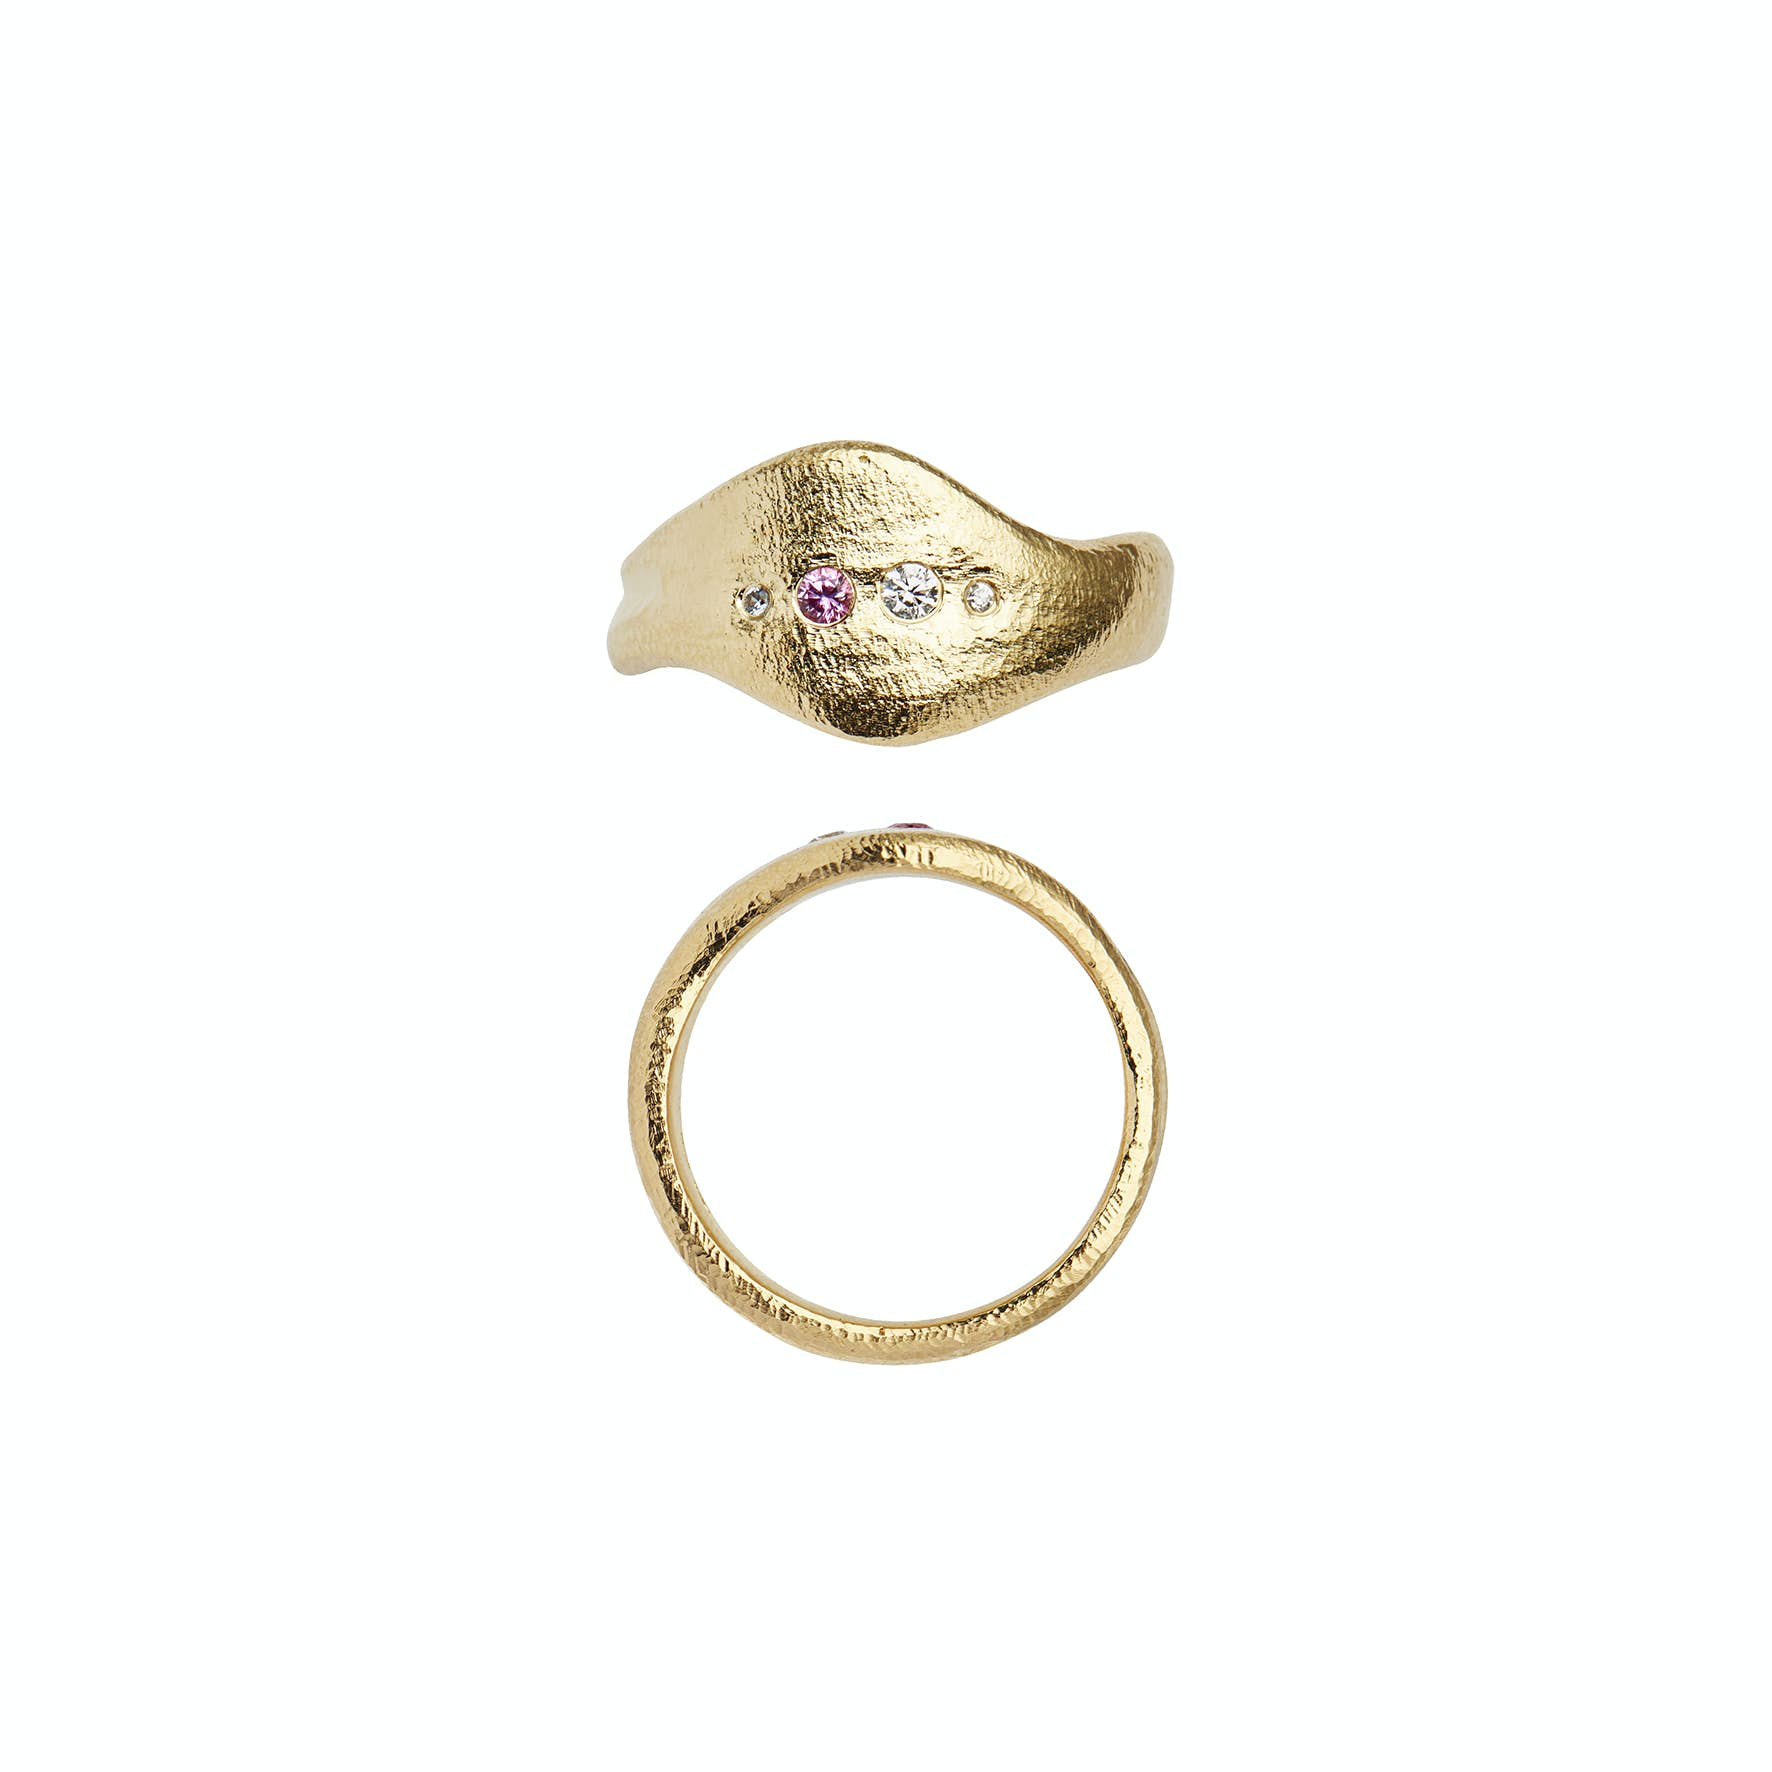 Ile De L'Amour Ring With Stones von STINE A Jewelry in Vergoldet-Silber Sterling 925